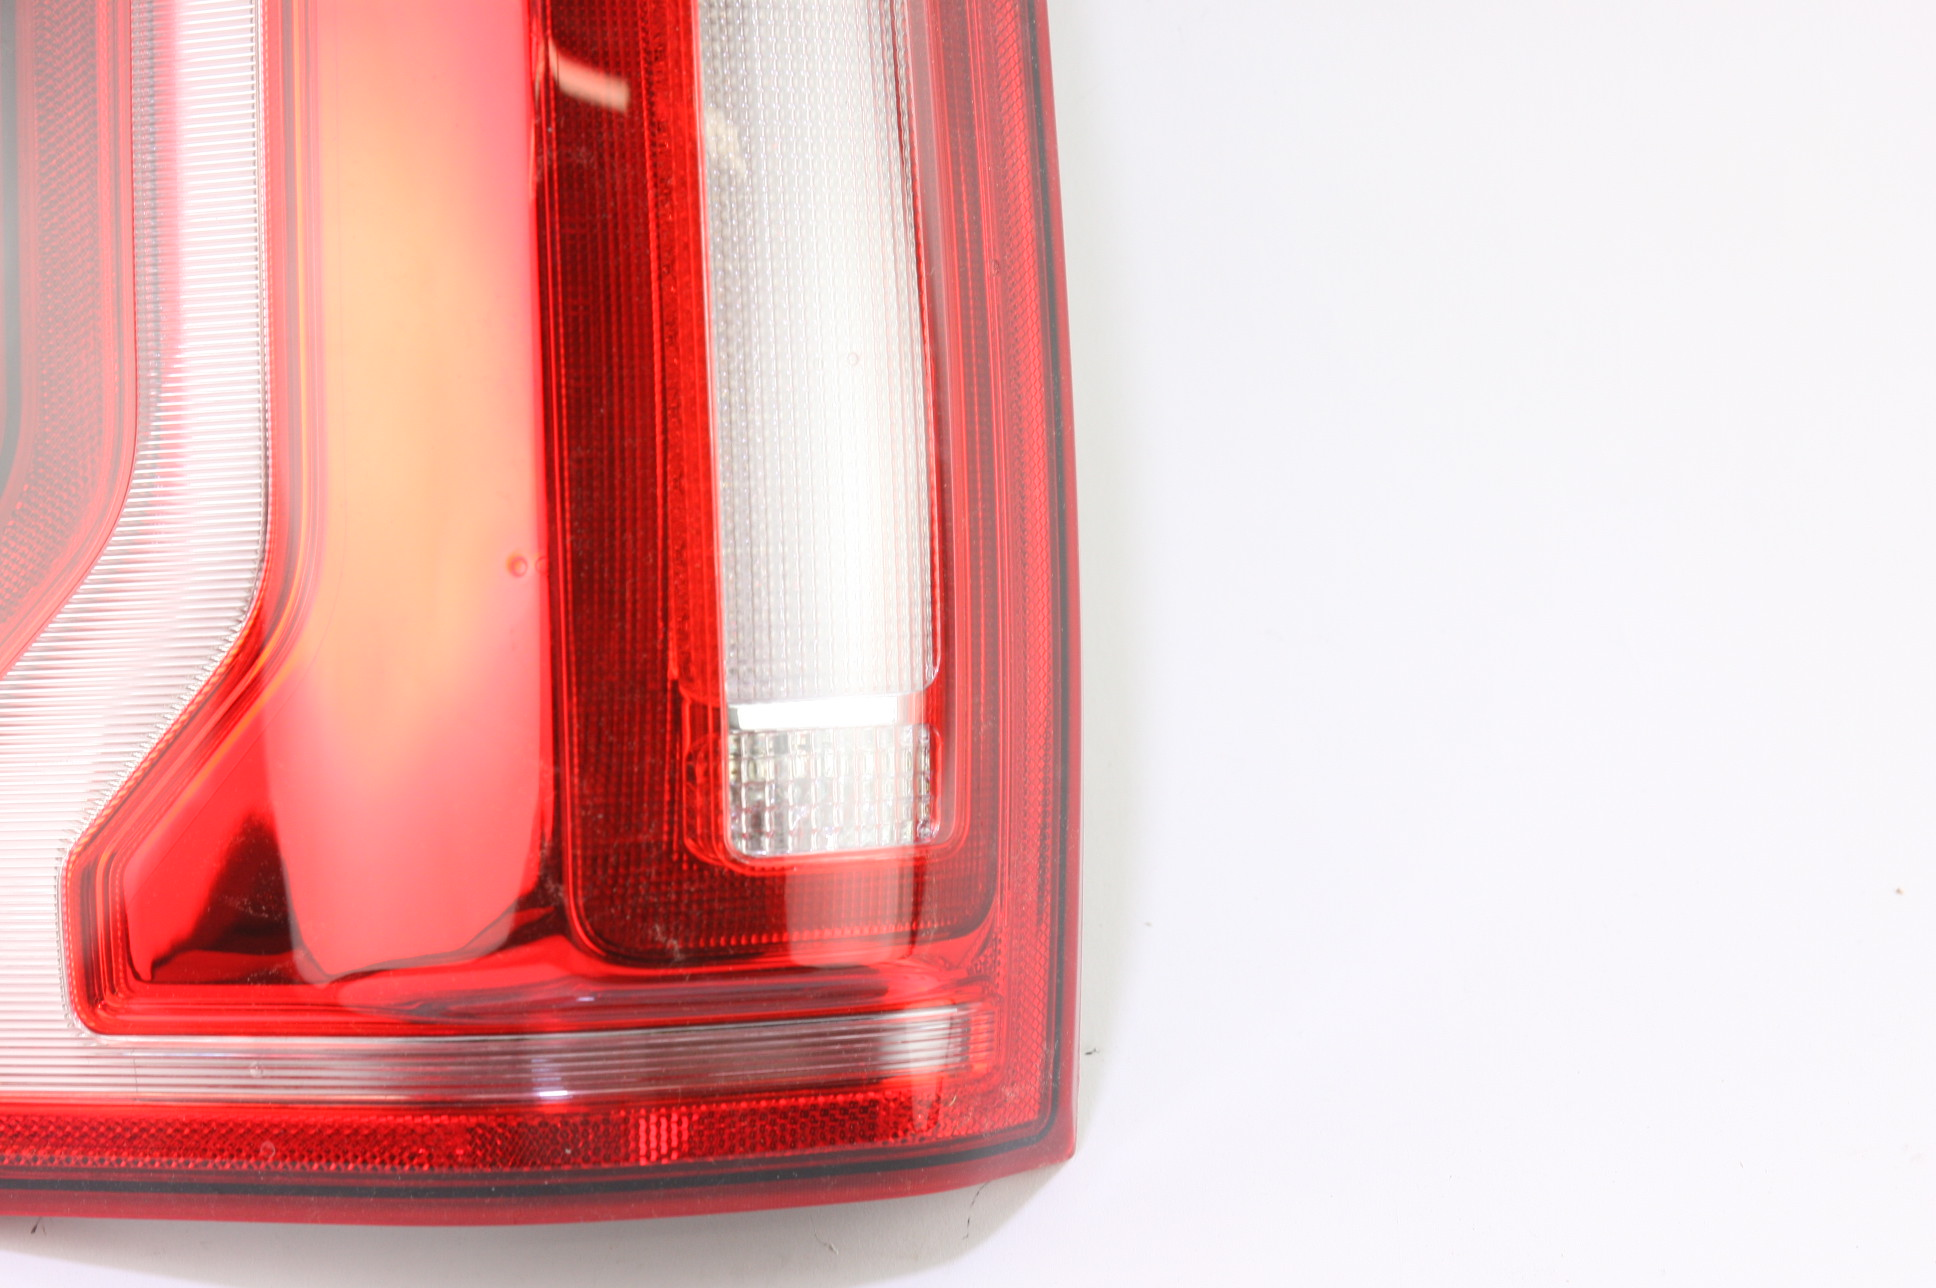 New OEM FL3Z13404B 15 -17 F-150 Tail Lamp Light Passenger RH LED without Radar - image 3